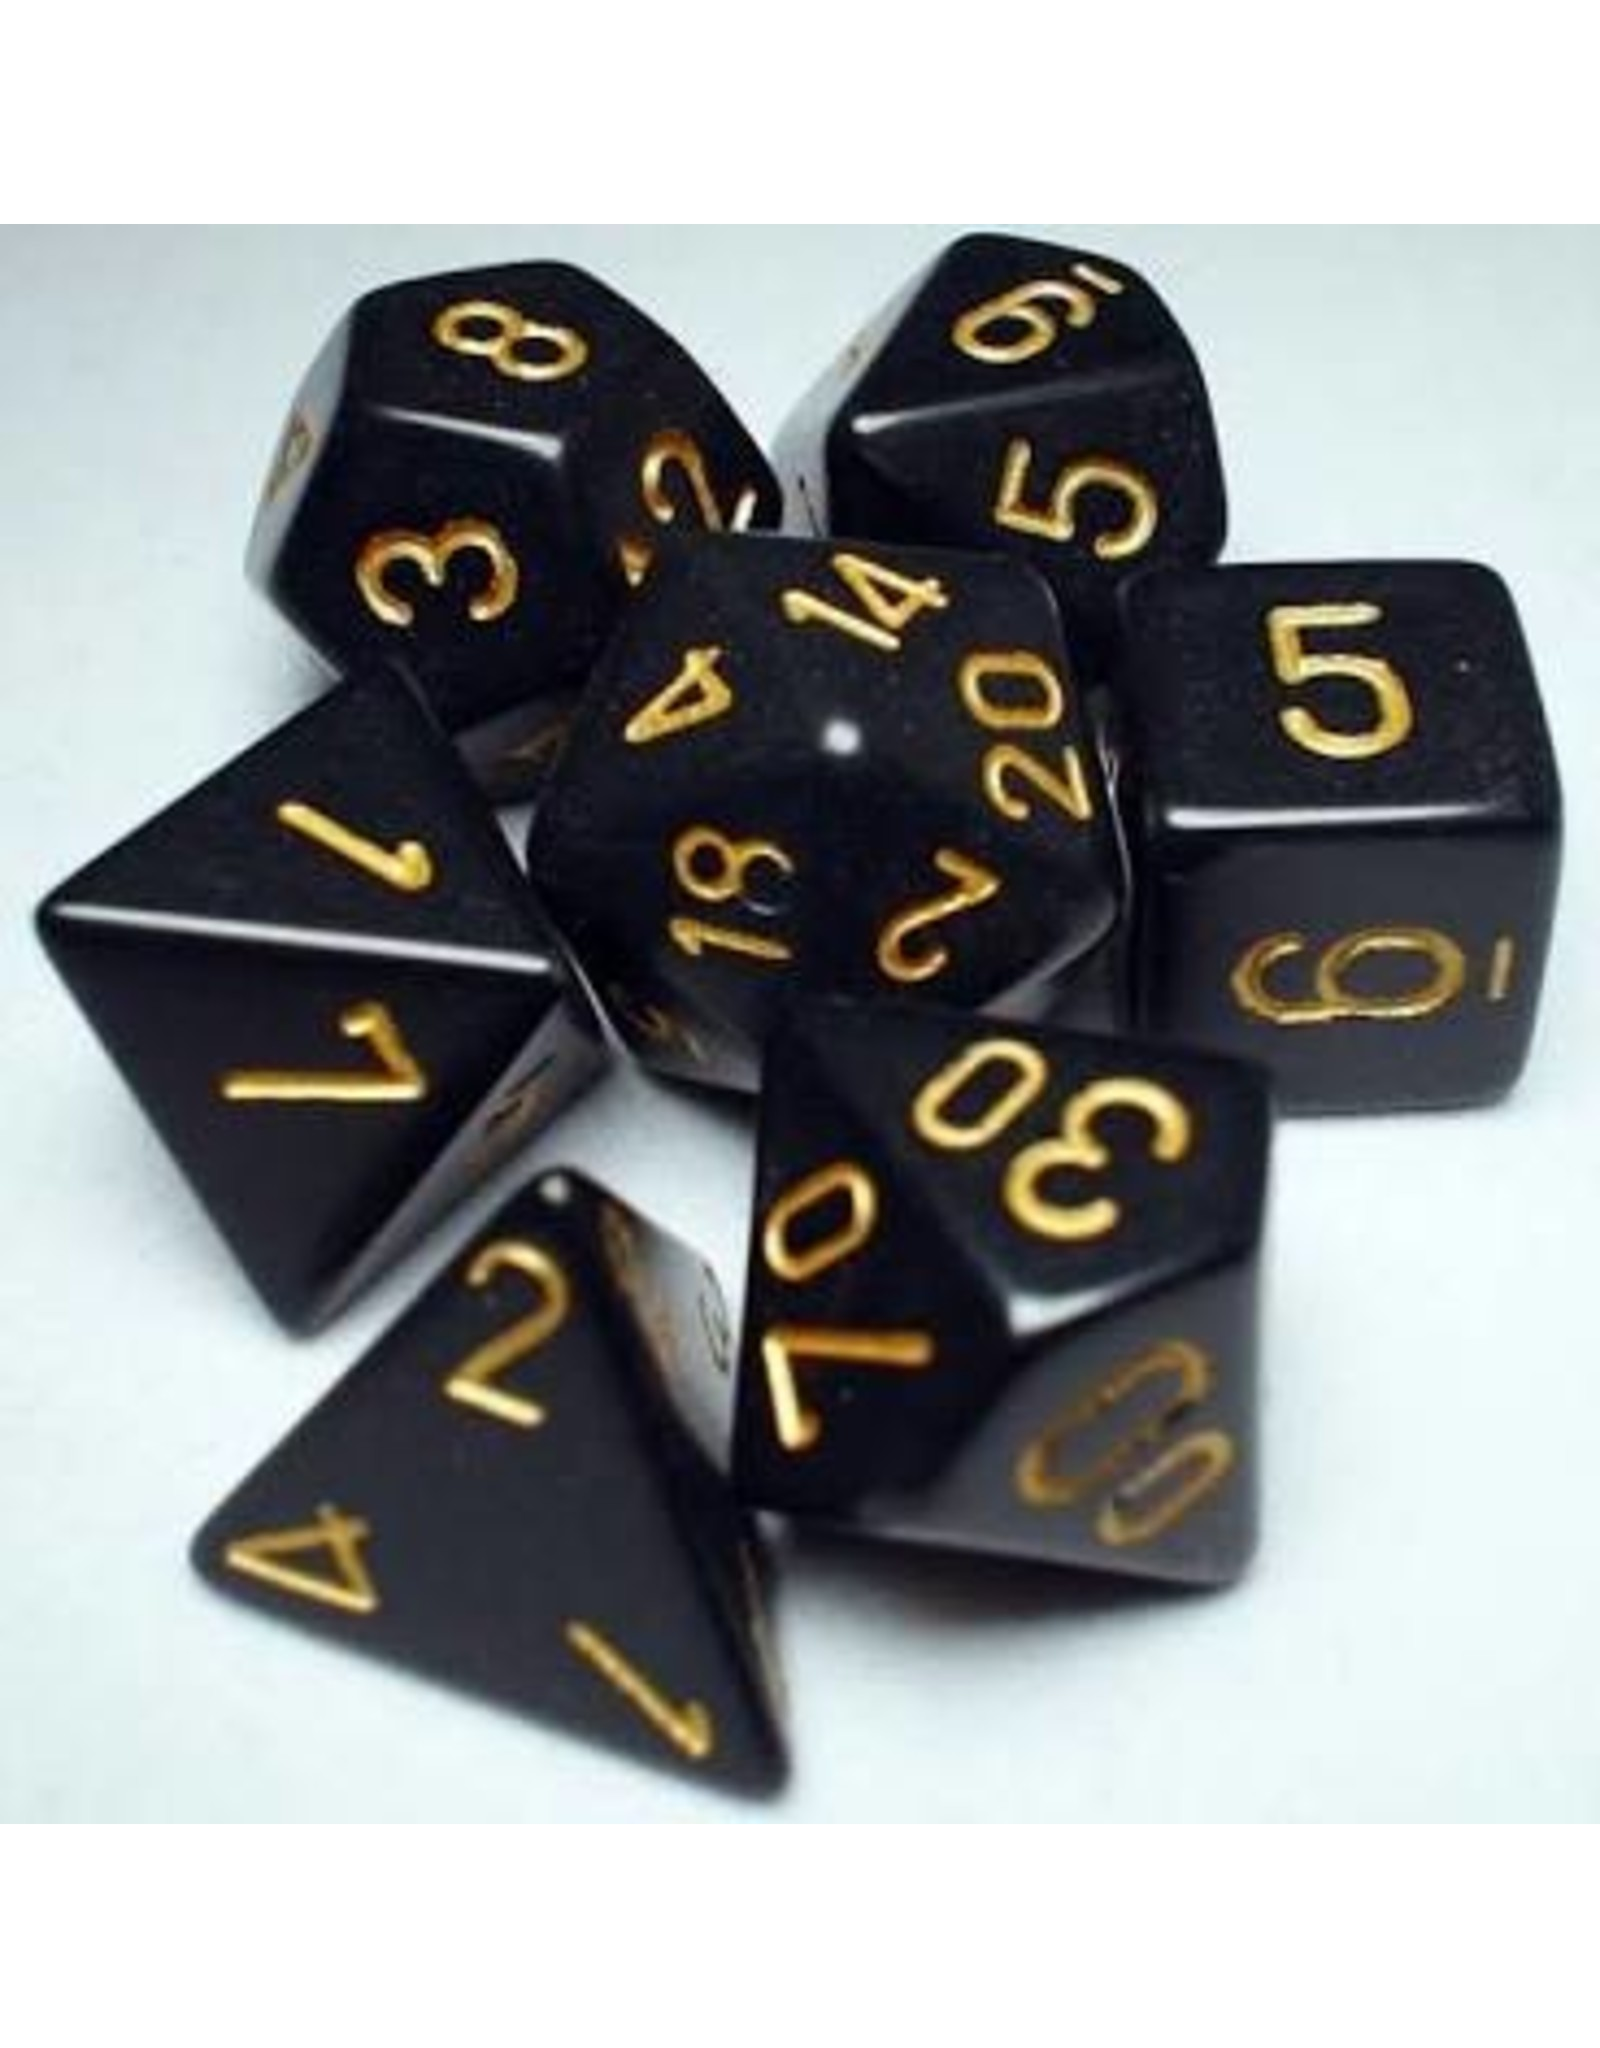 Chessex 7-Set Polyhedral Opaque: Black With Gold